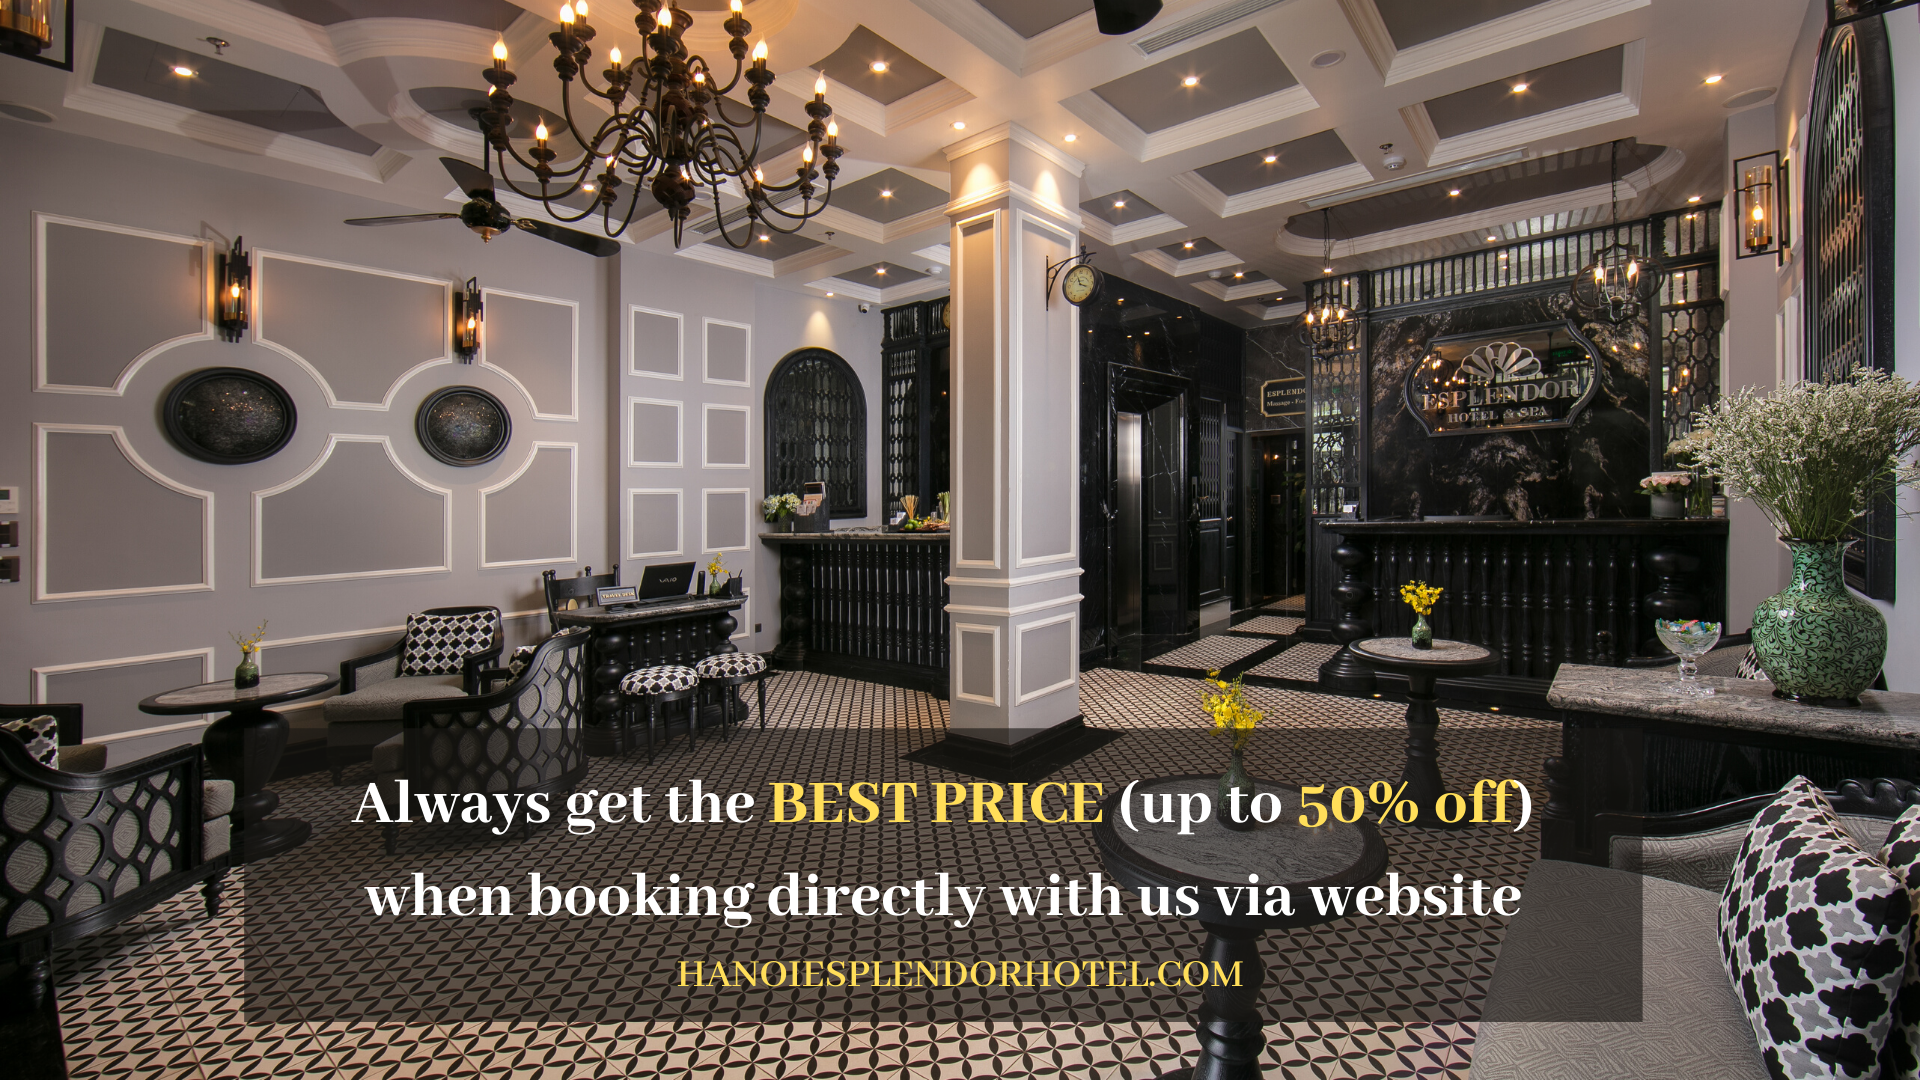 Always get the BEST PRICE when booking d